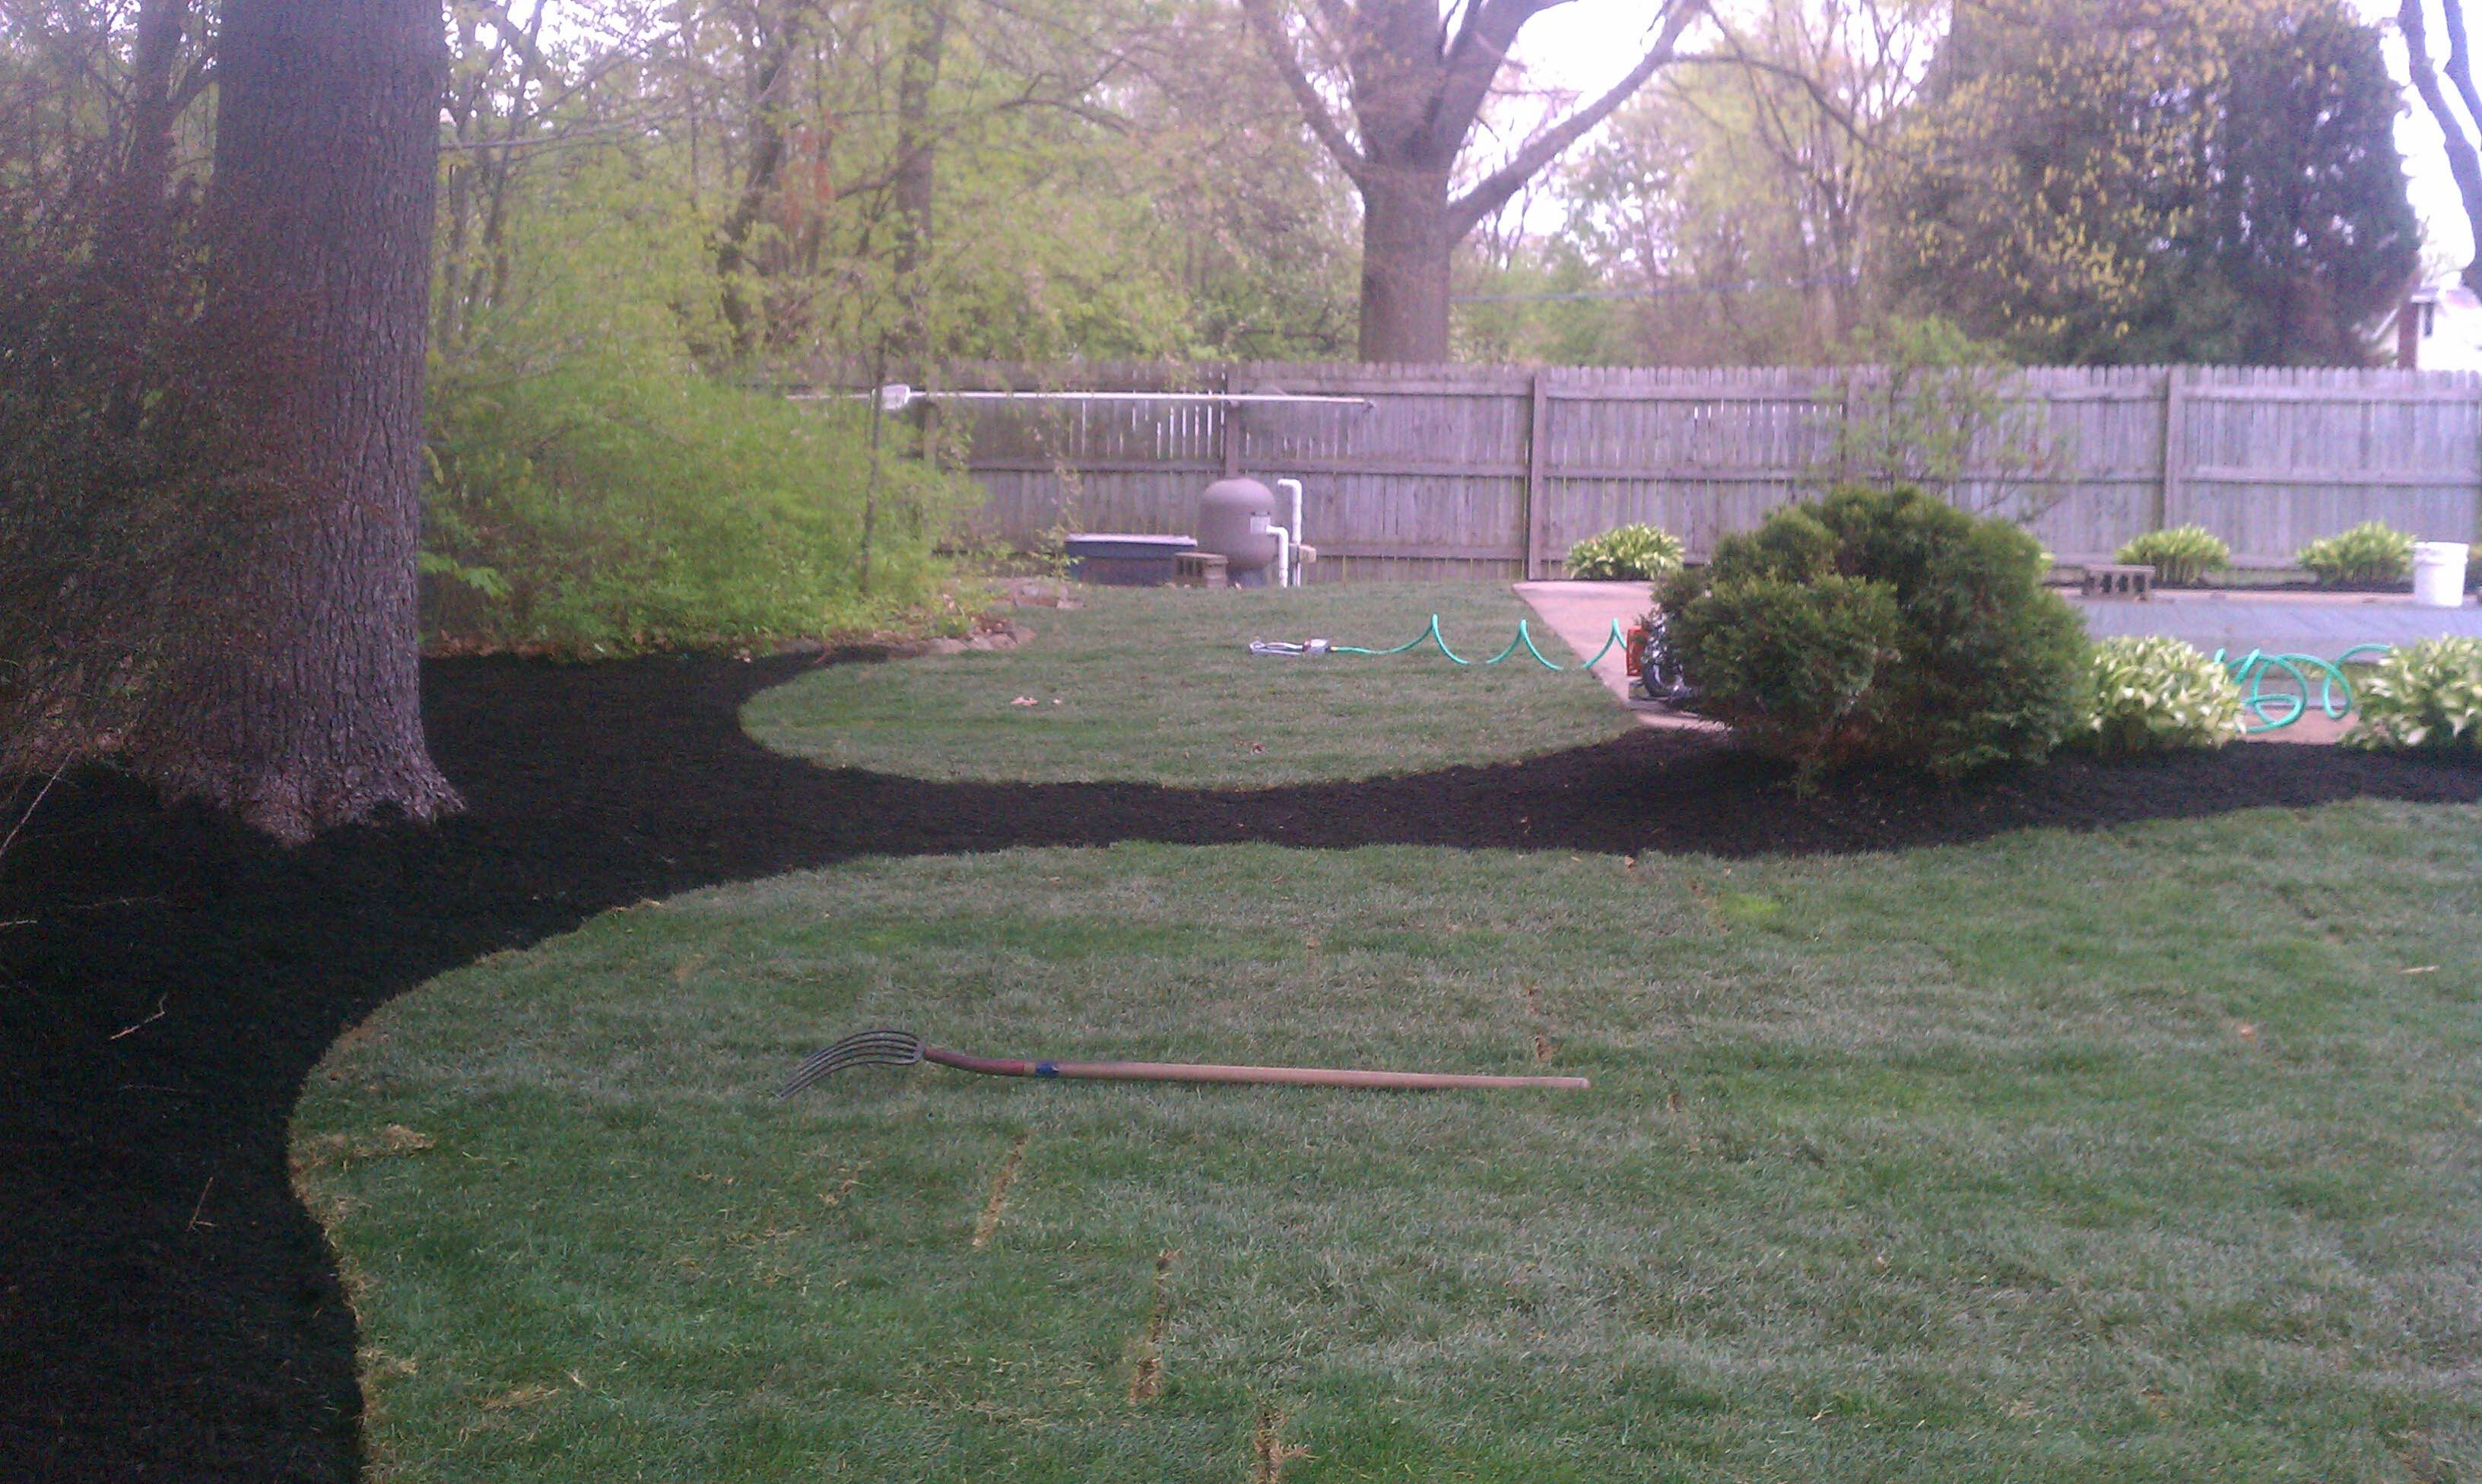 Triple g lawn fertilization lawn care service fort for Local lawn mowing services